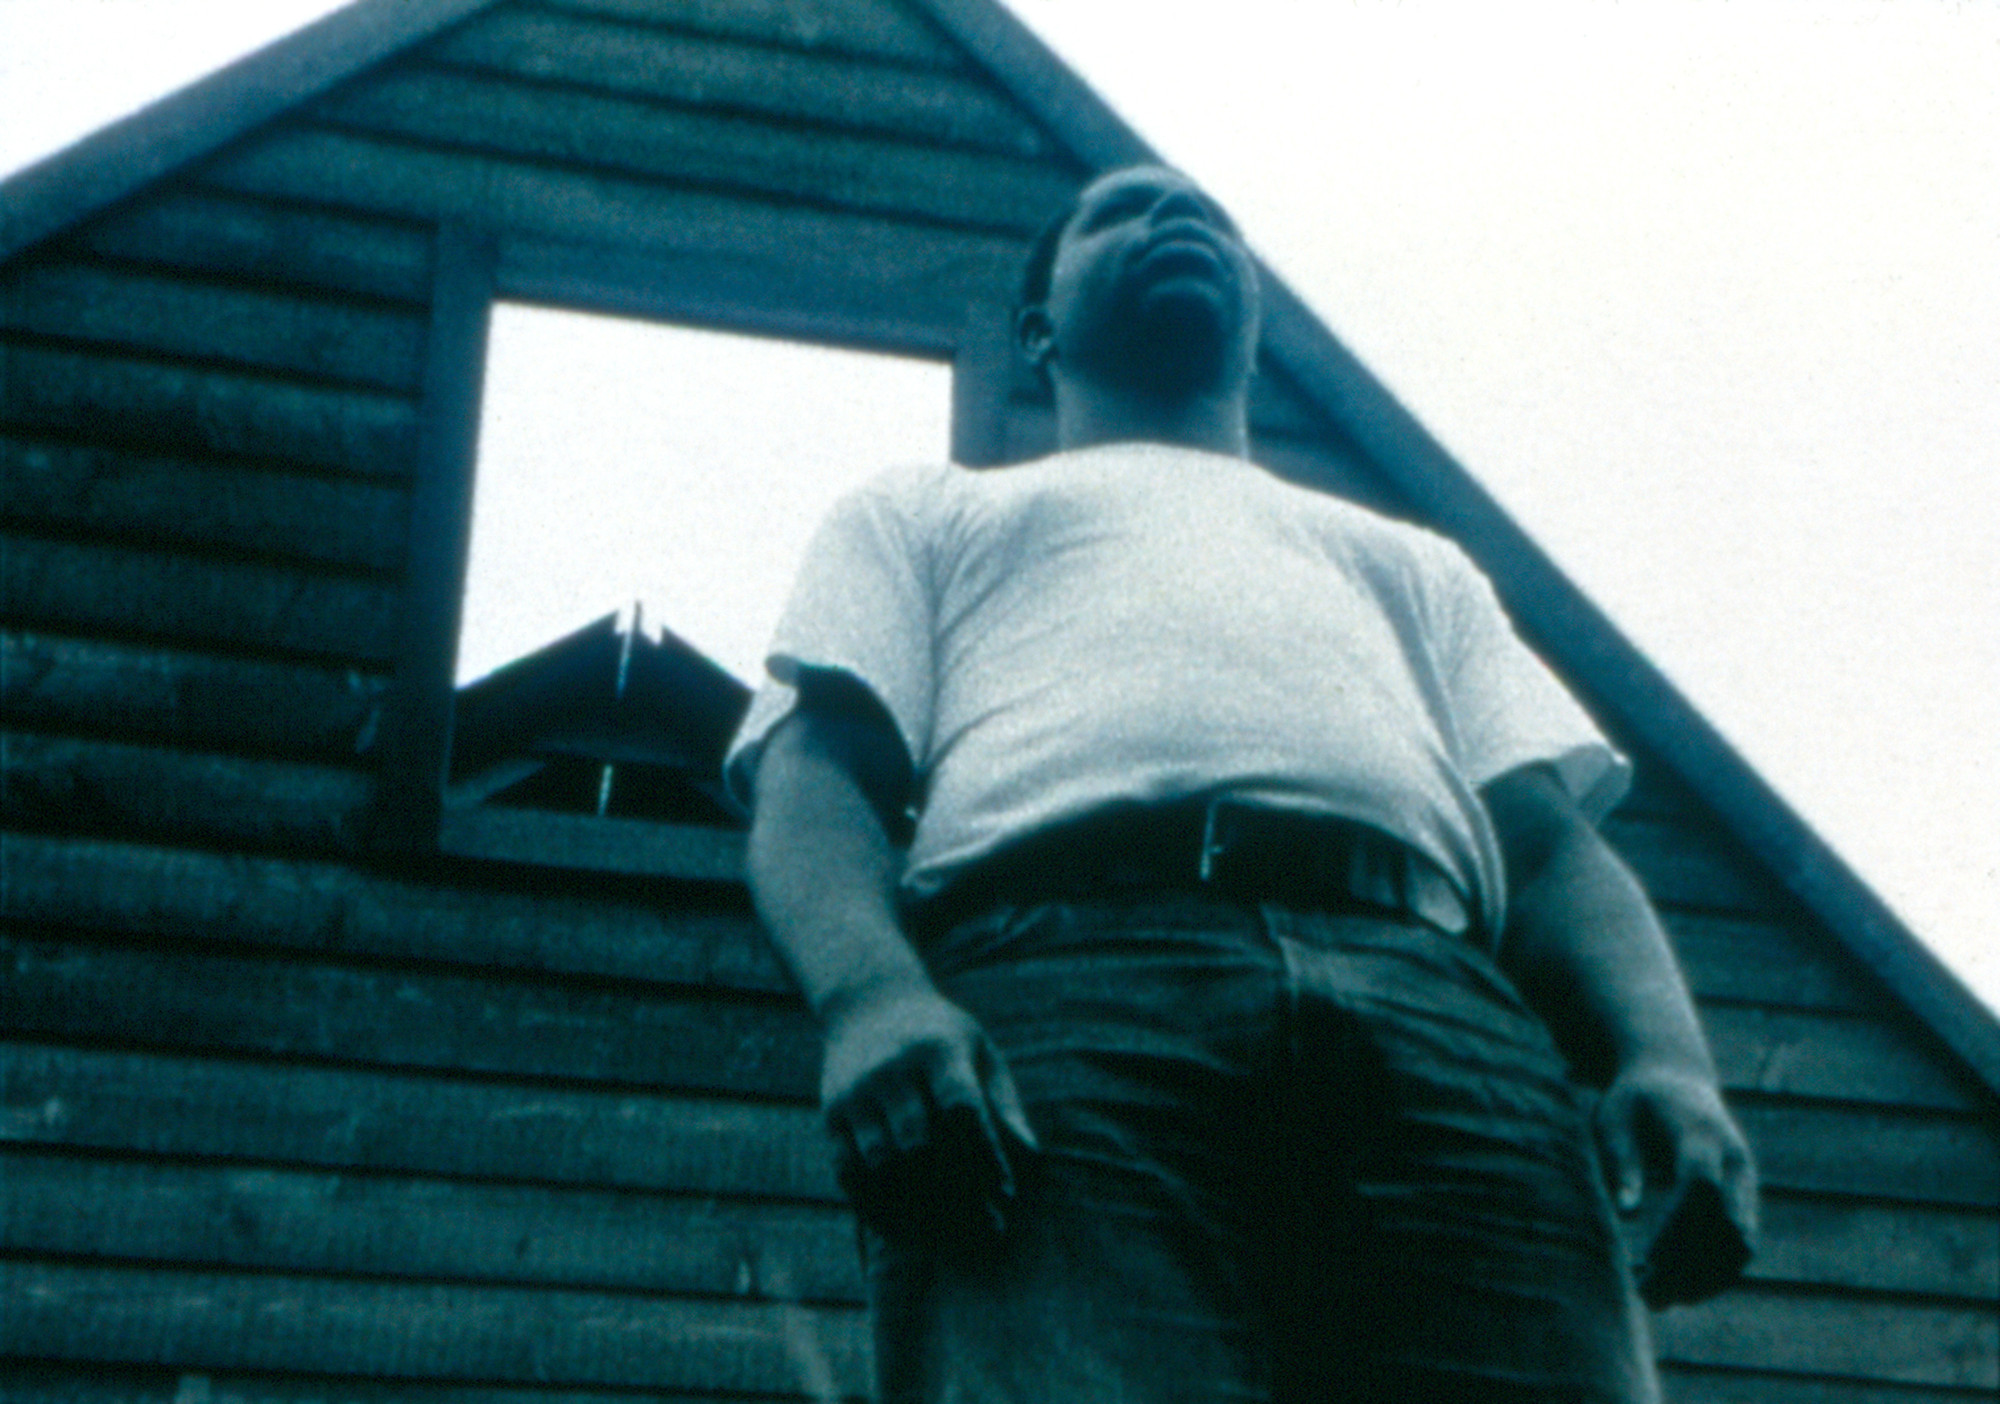 Steve McQueen. Deadpan. 1997. 16mm film transferred to video (black and white, silent). Fractional and promised gift of Thea Westreich and Ethan Wagner. © 2016 Steve McQueen. Used by permission